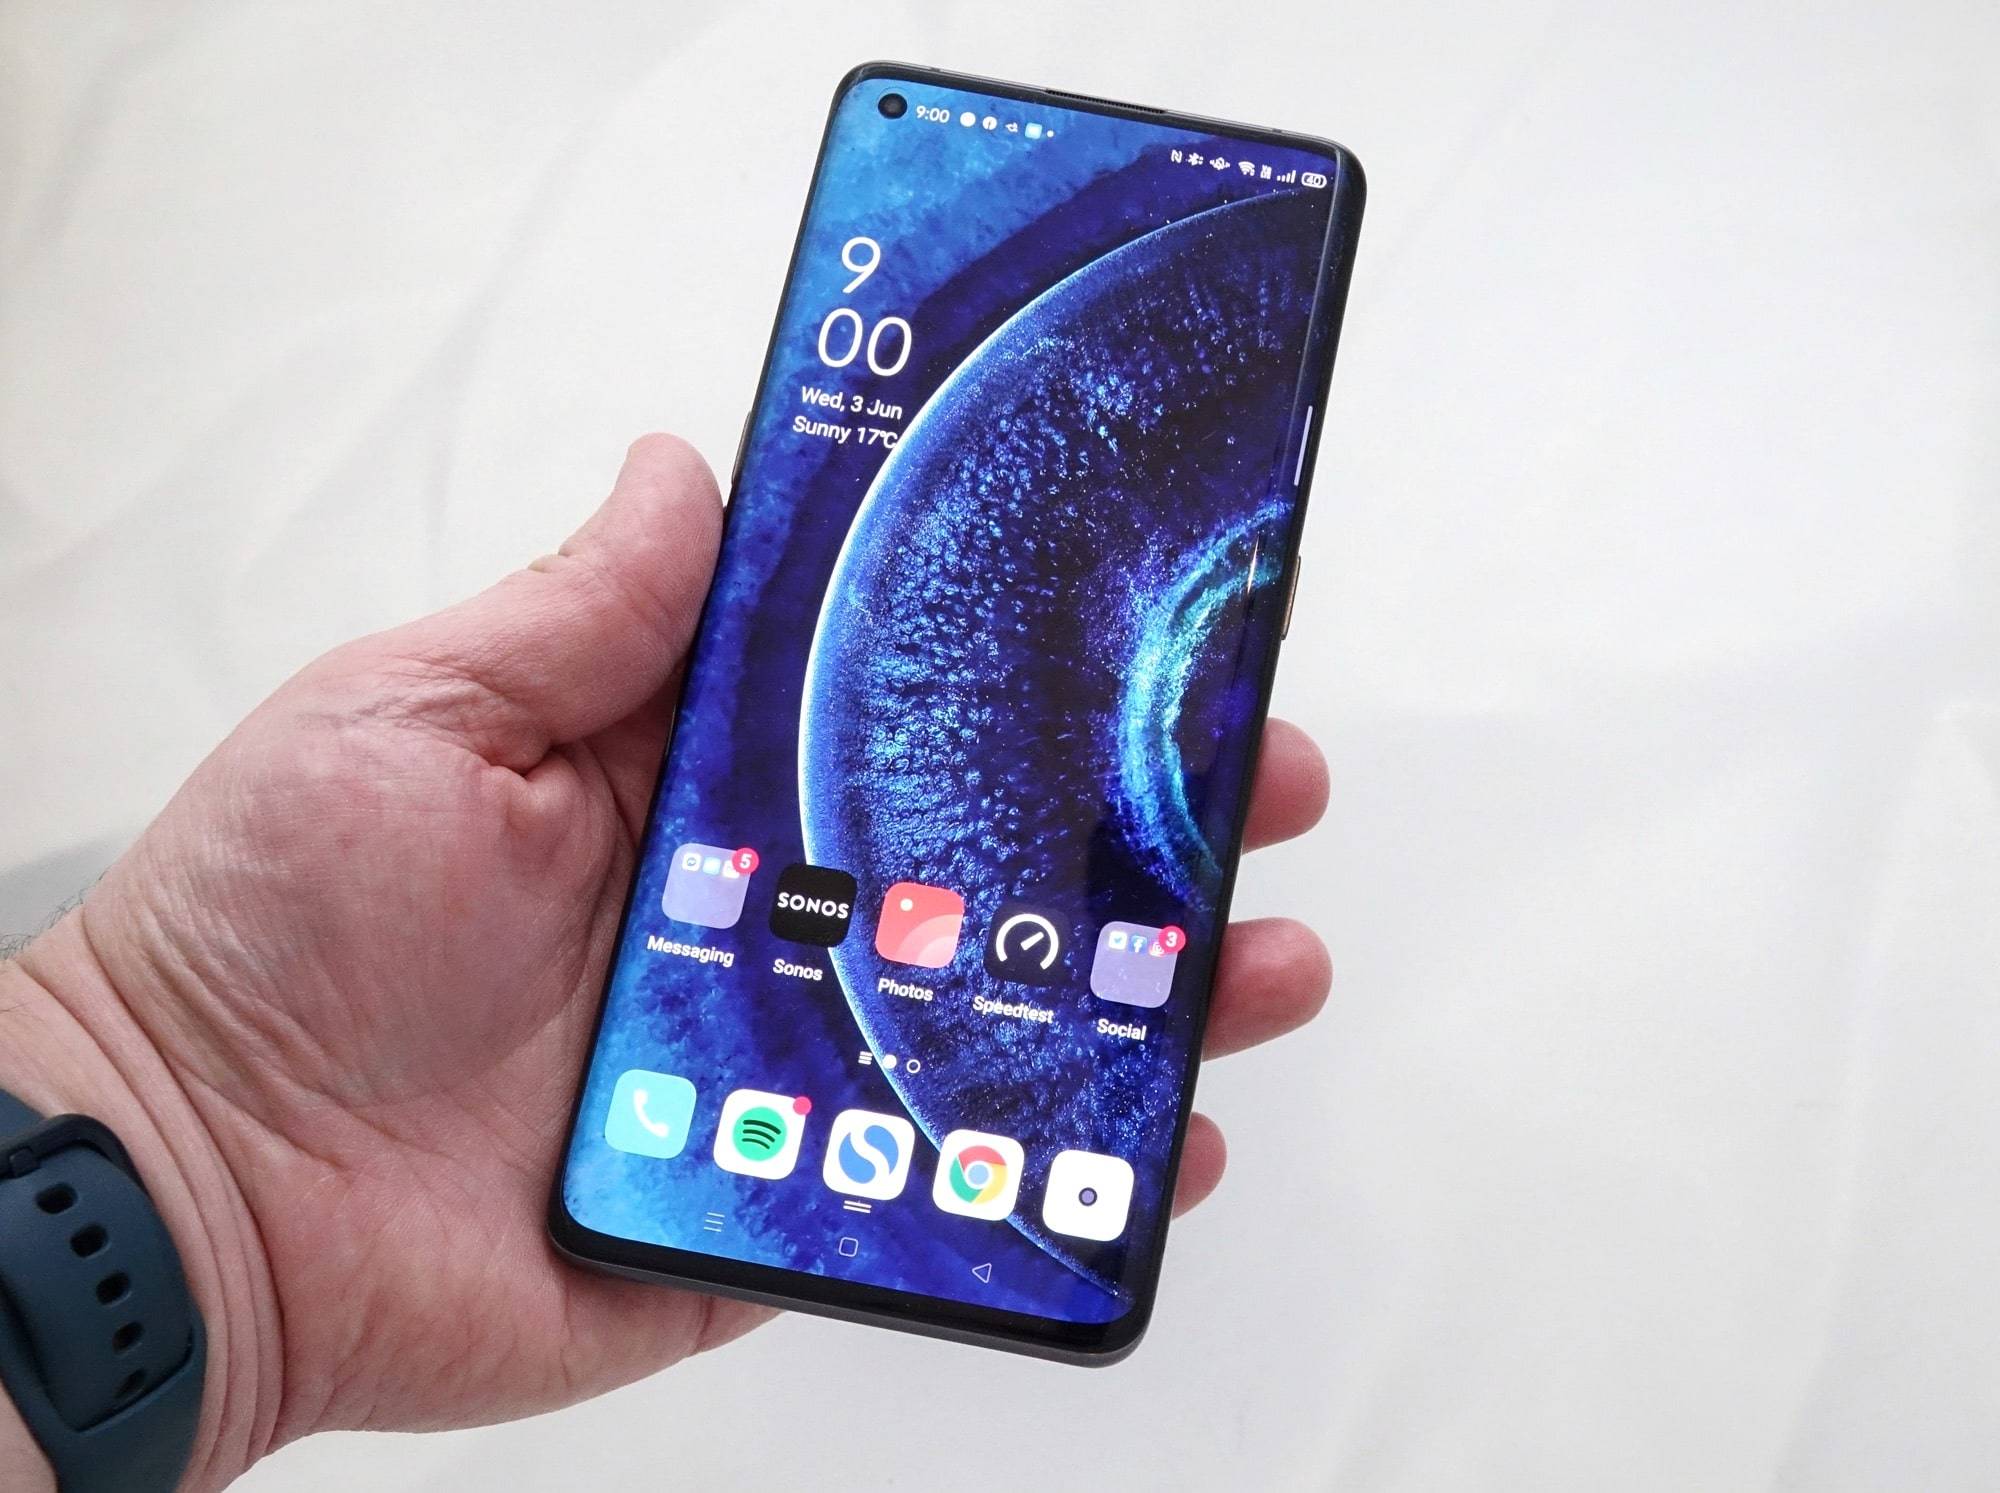 Holding the Oppo Find X2 Pro